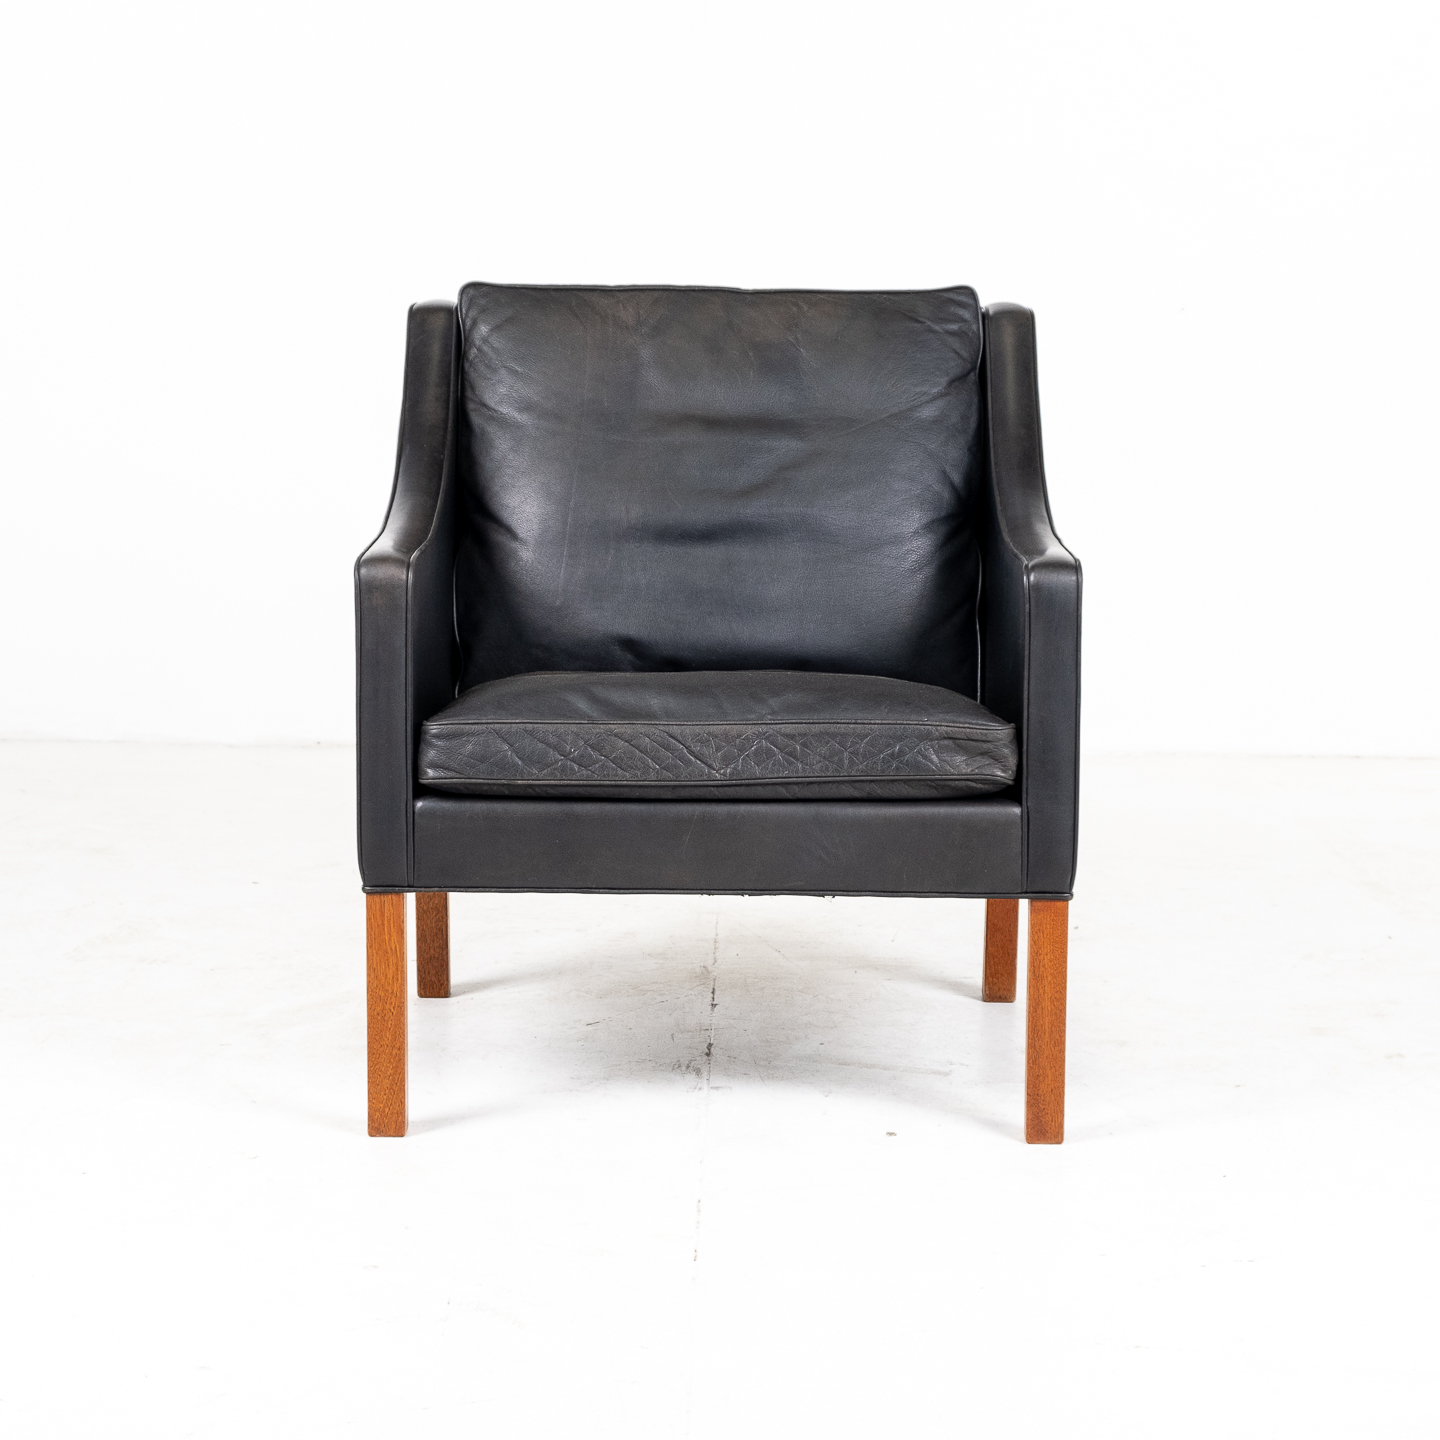 Model 2207 Armchair With Footstool Designed By Borge Mogensen For Fredericia Mobelfabrik In Black Leather, 1960s, Denmark 0000004